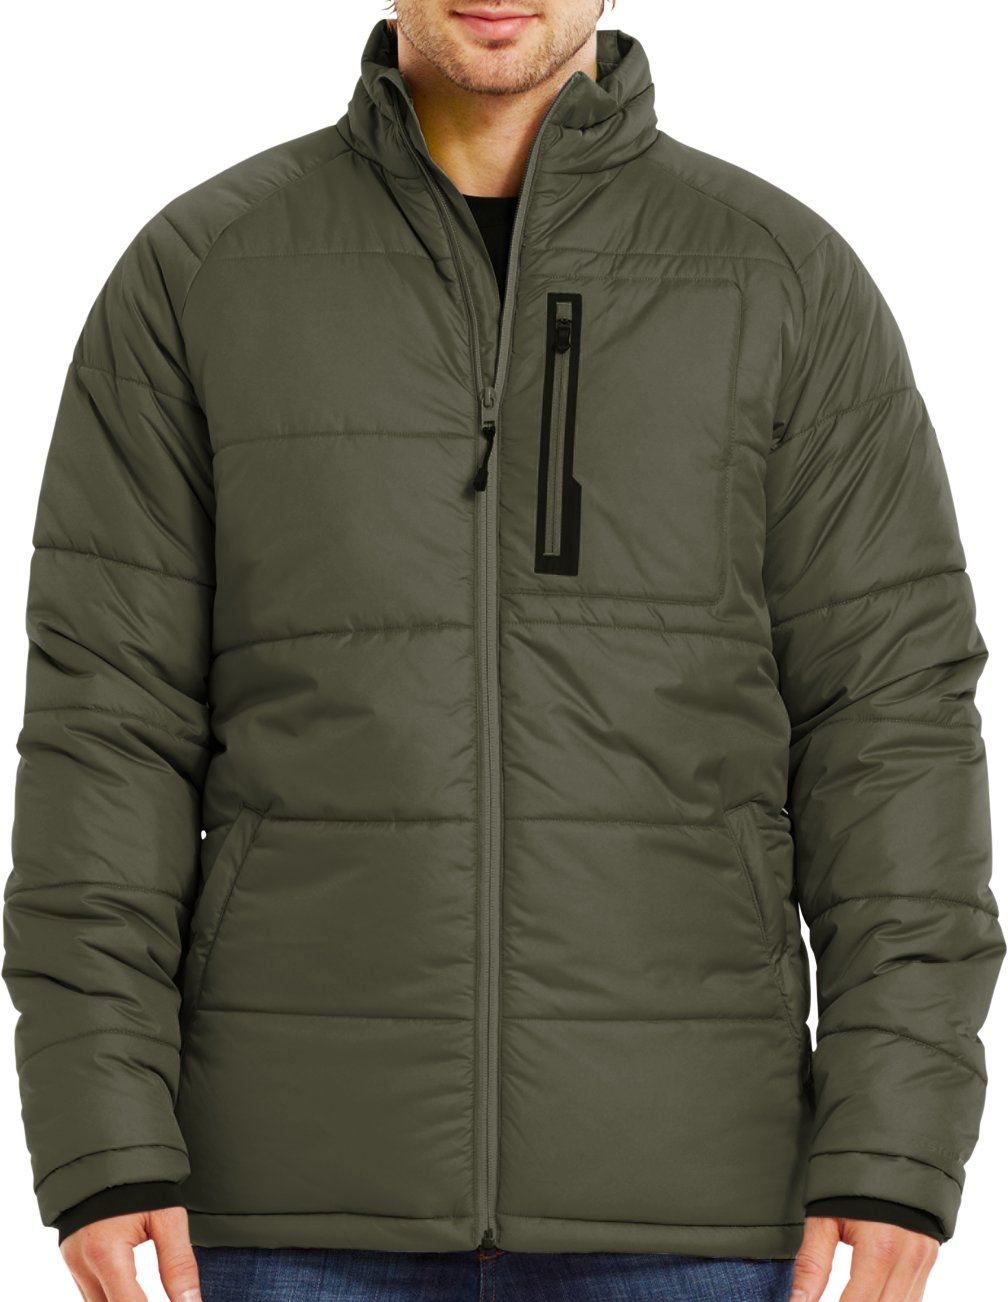 Men's ColdGear® Infrared Alpinlite Max Jacket, GREENHEAD